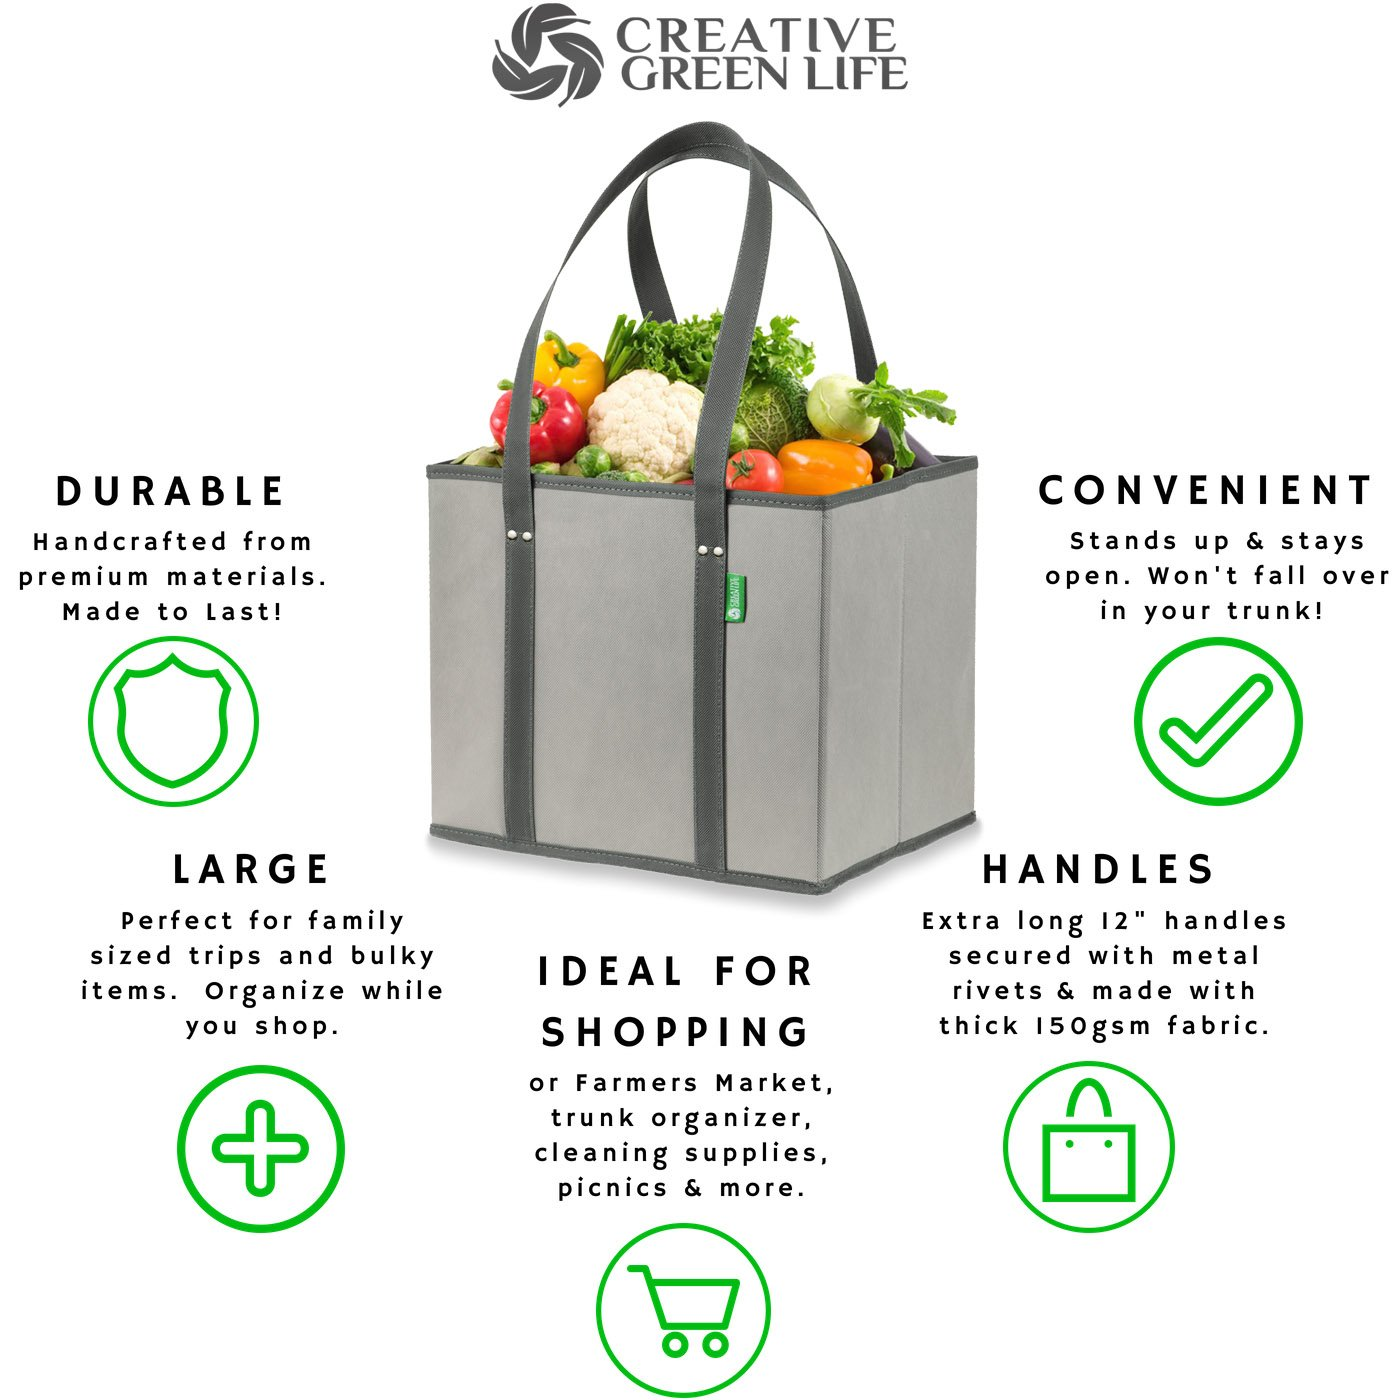 Reusable Grocery Shopping Box Bags (3 Pack - Gray). Large, Premium Quality Heavy Duty Tote Bag Set with Extra Long Handles & Reinforced Bottom. Foldable, Collapsible, Durable & Eco Friendly by Creative Green Life (Image #2)